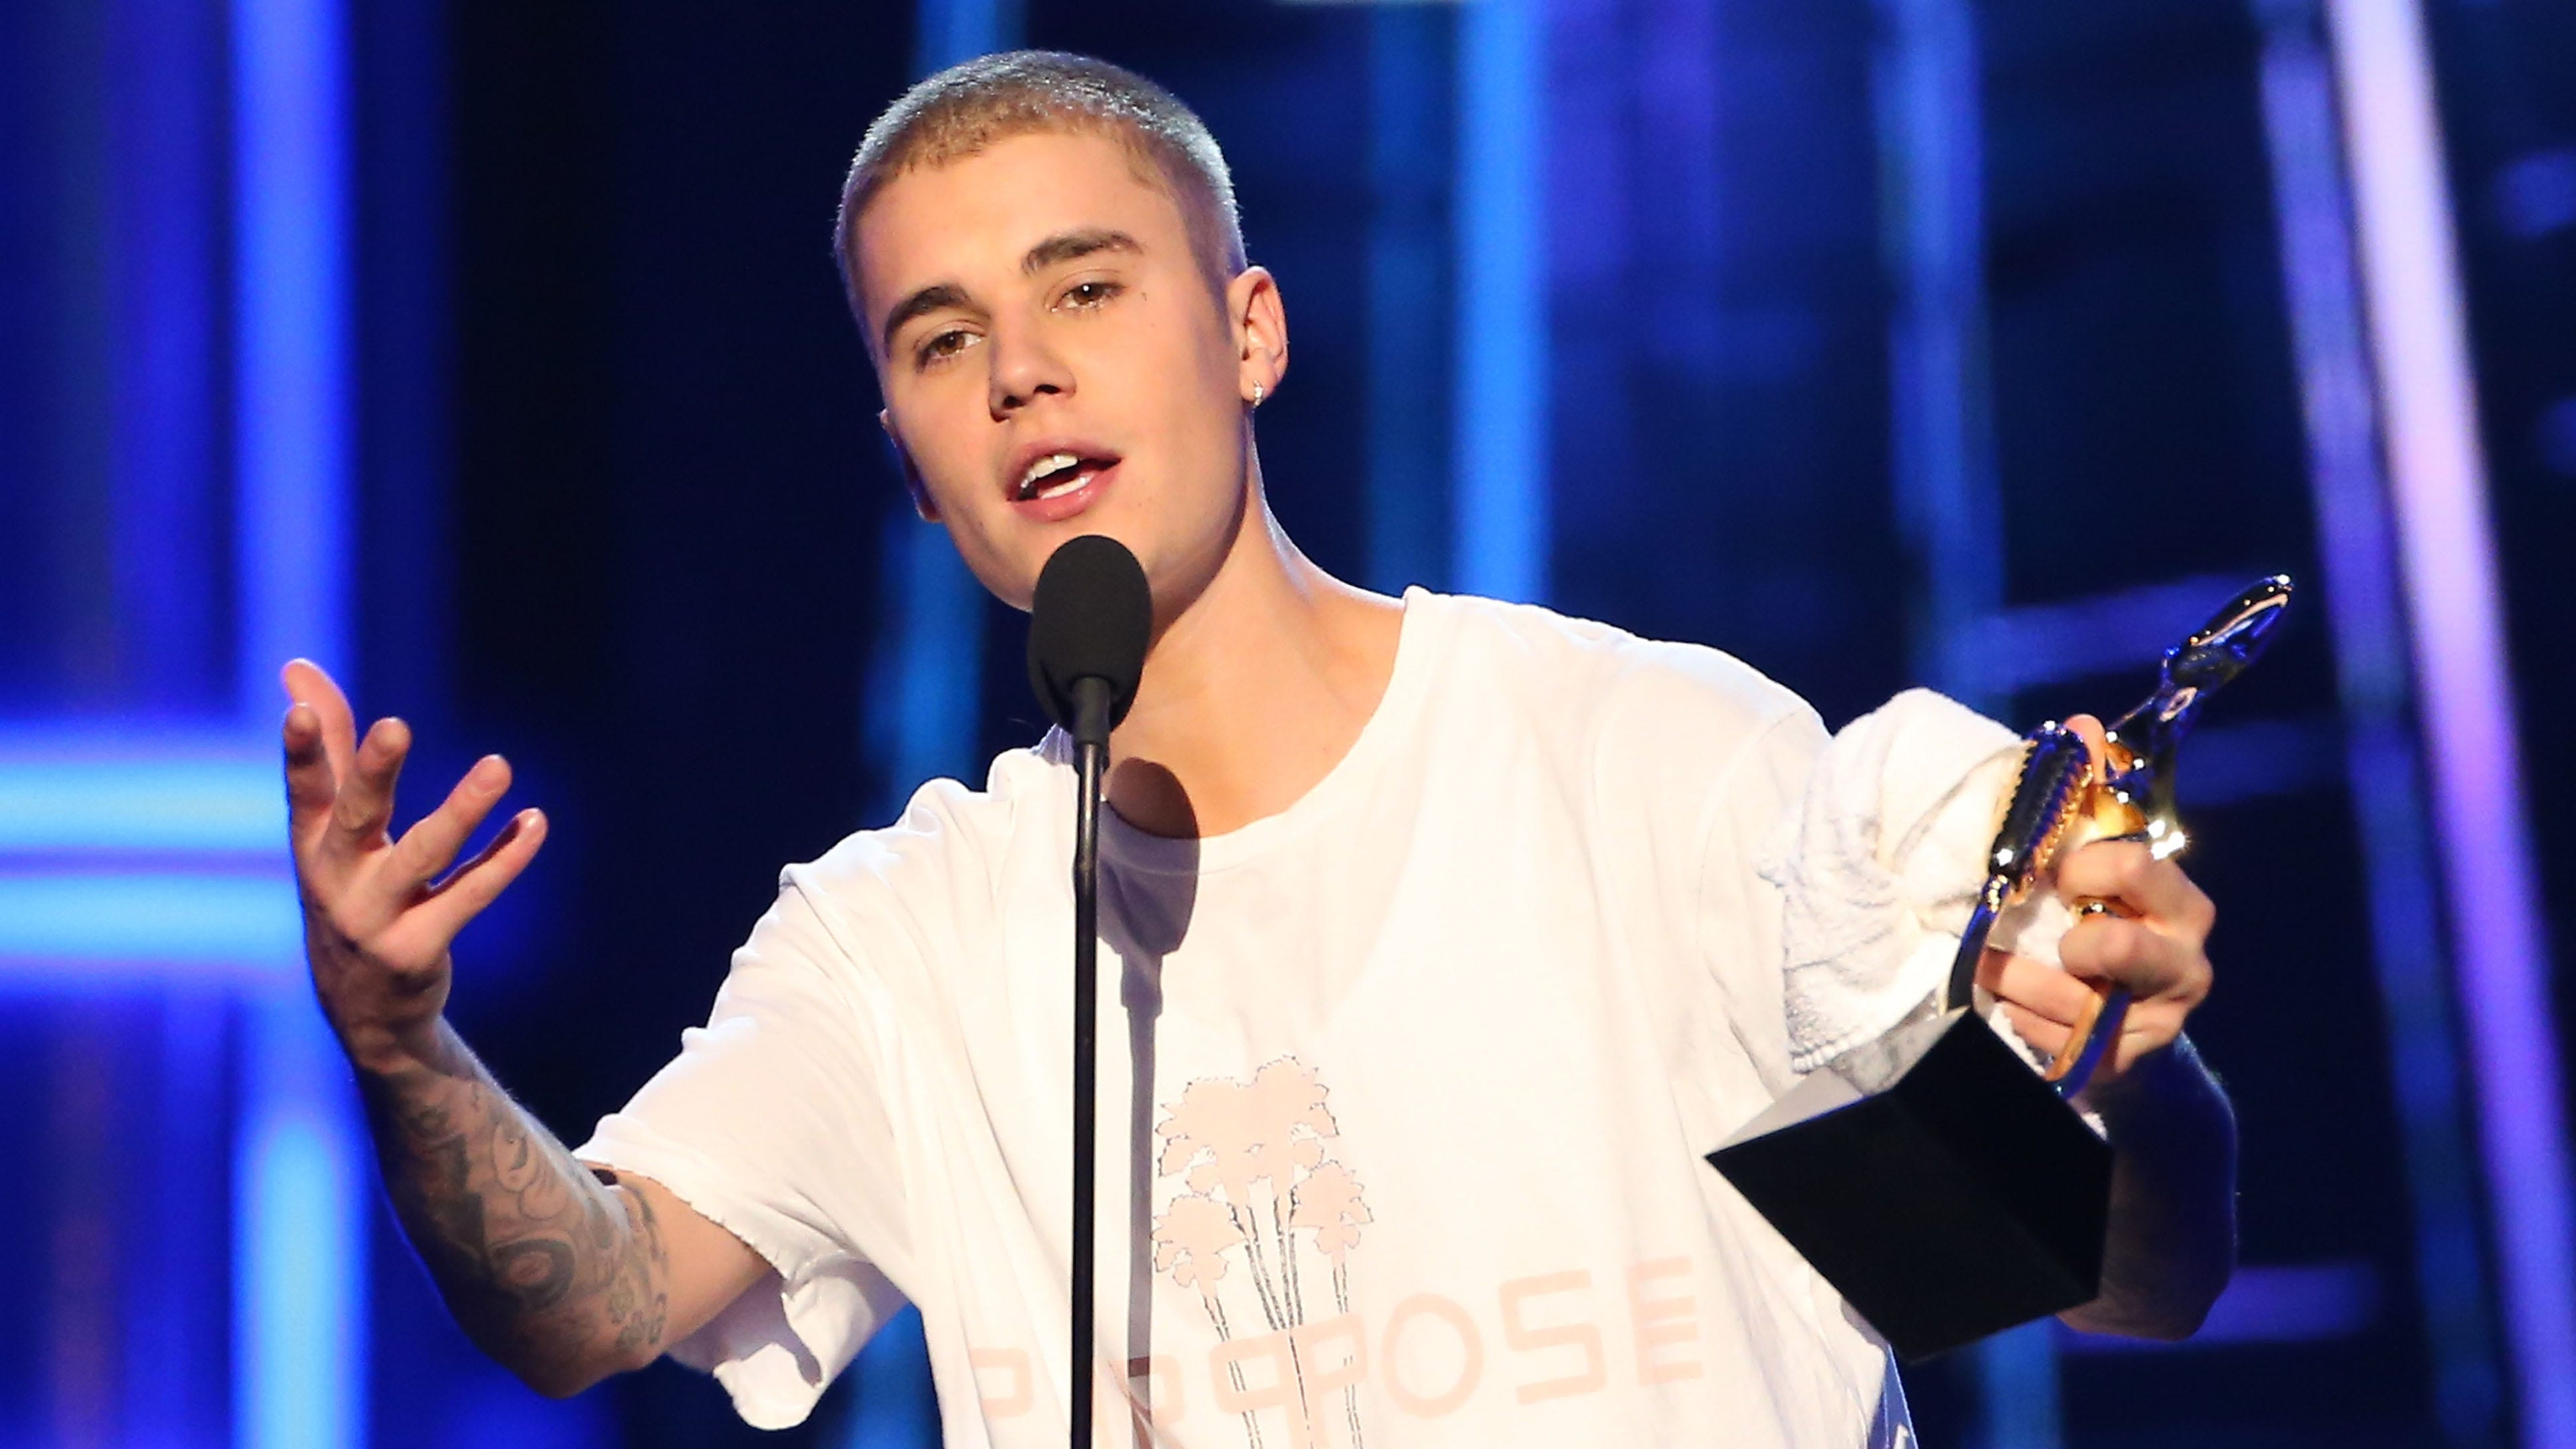 Justin bieber cant sing